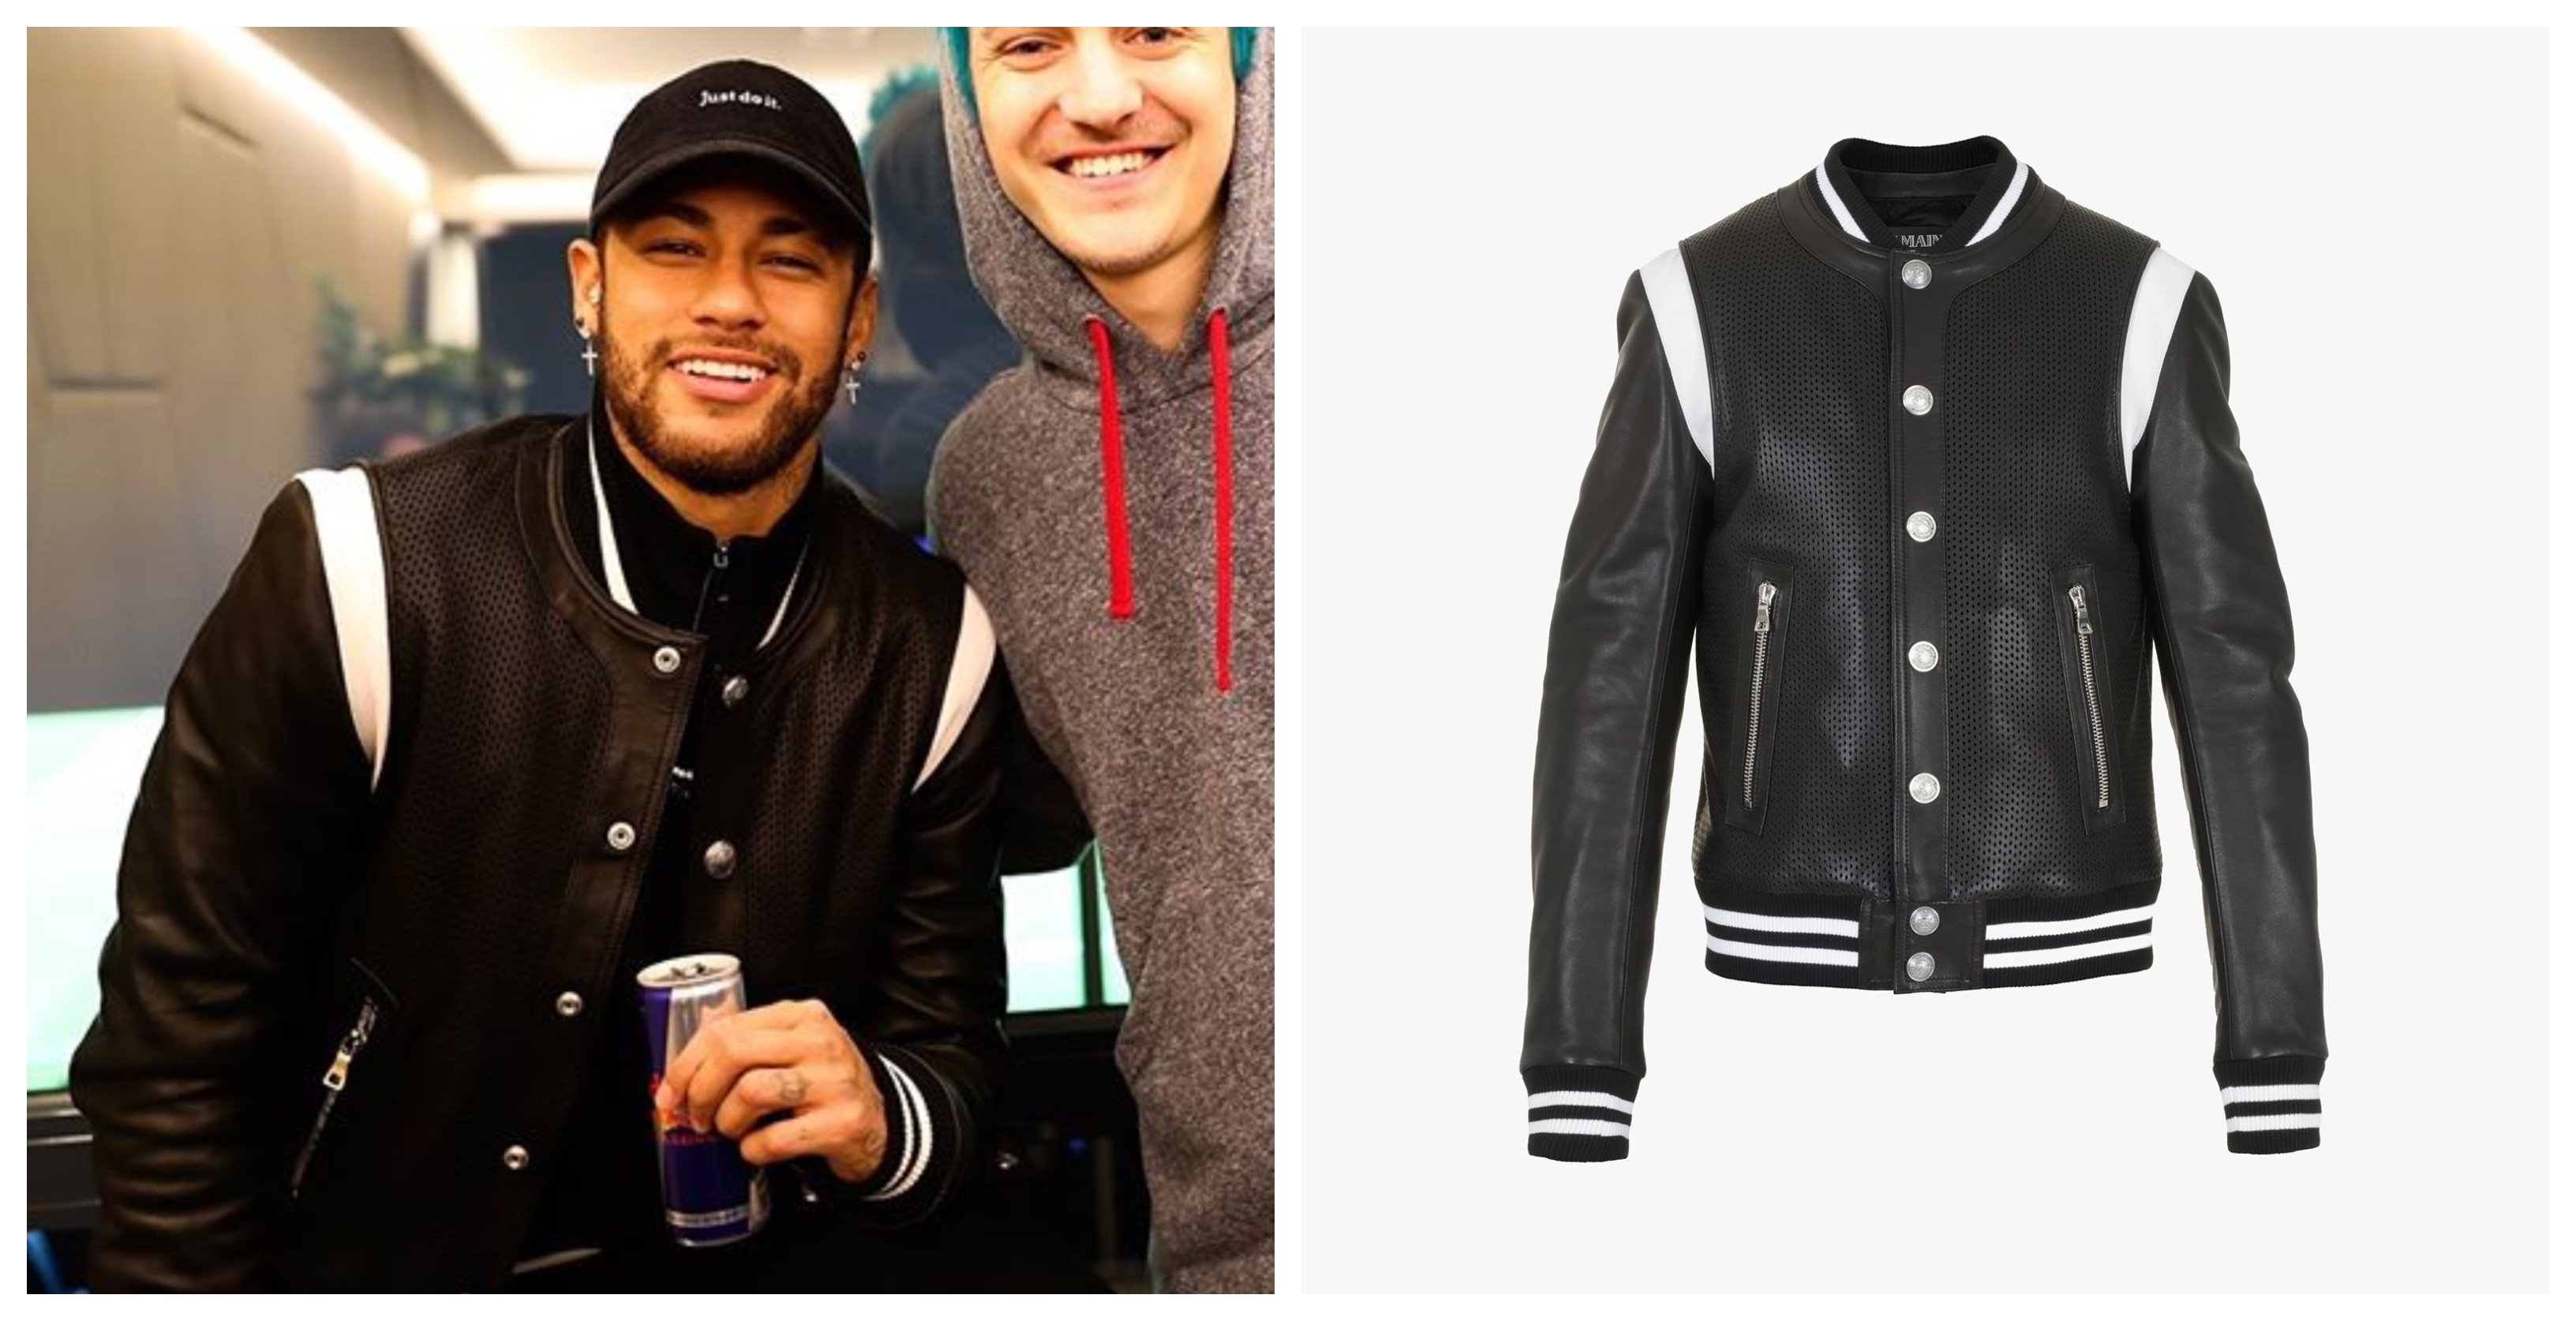 SNKRVN Balmain Perforated leather varsity jacket Neymar Jr